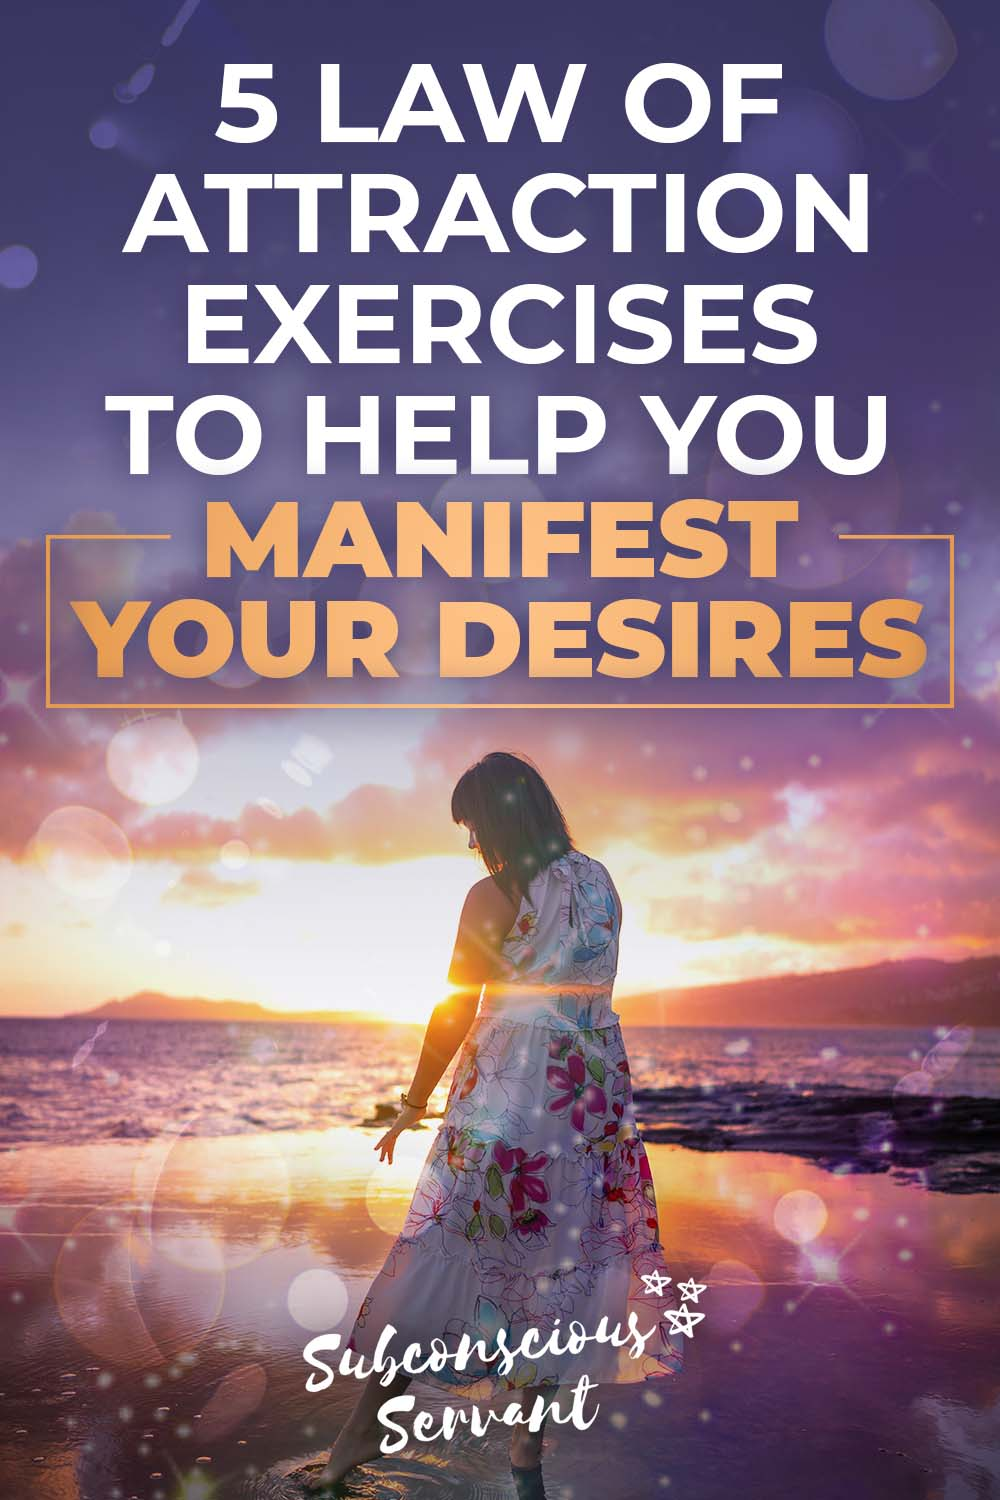 5 Law Of Attraction Exercises To Help You Manifest Your Desires